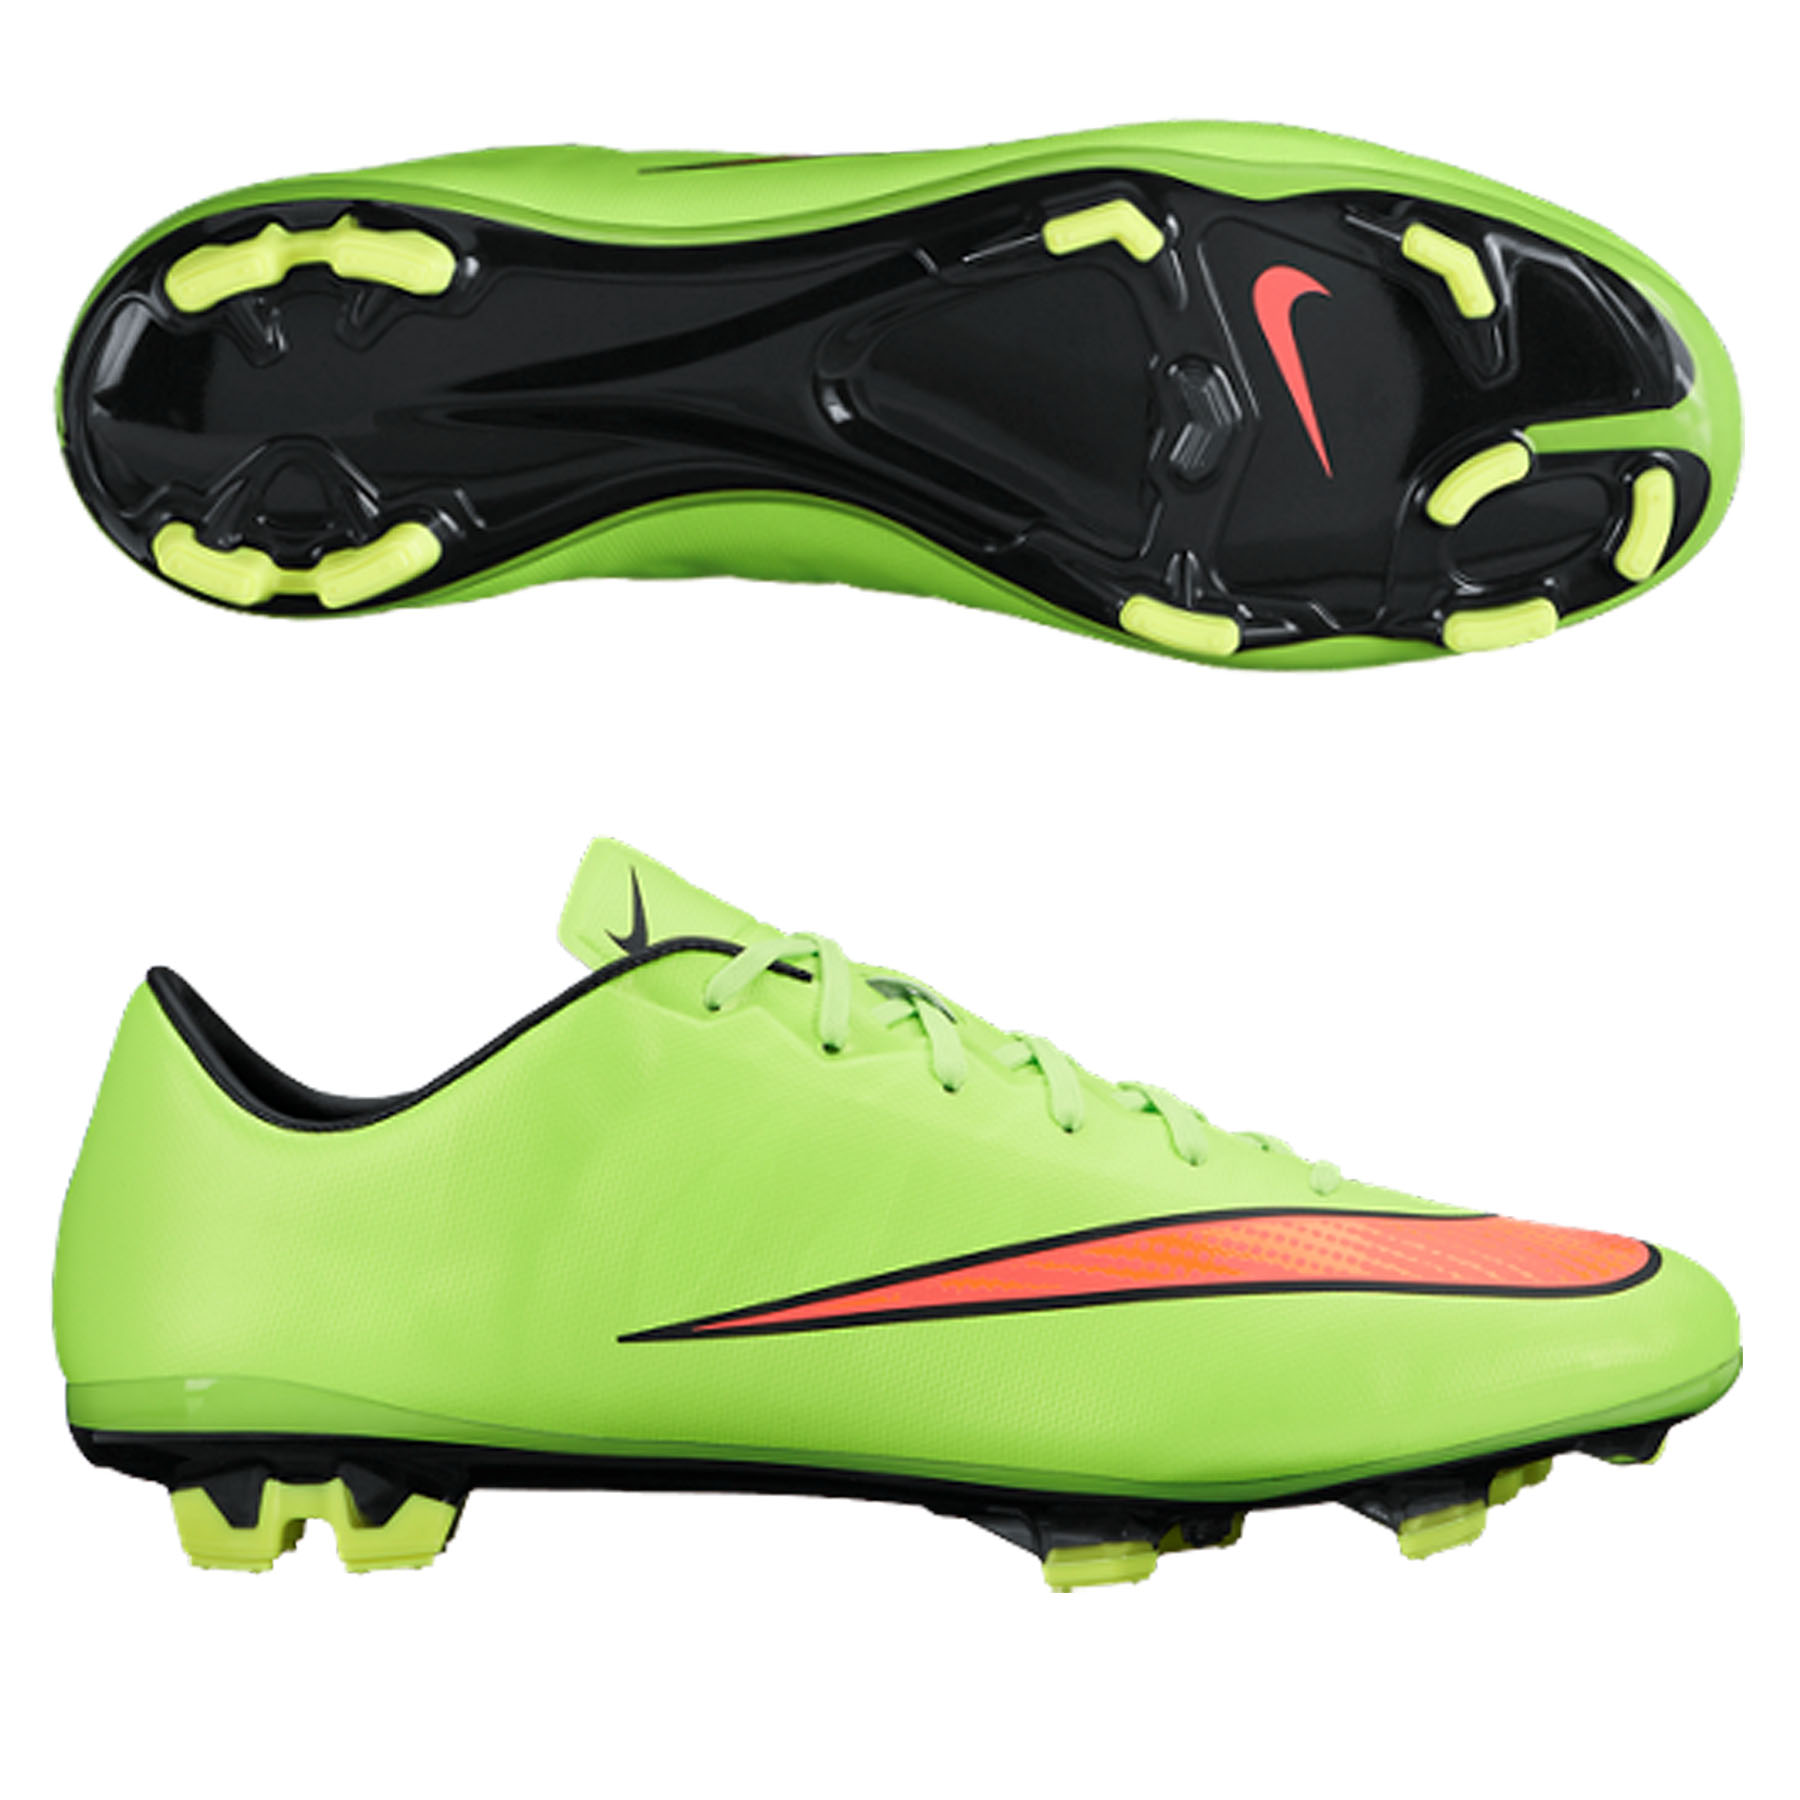 Nike Mercurial Veloce II Firm Ground Football Boot Green